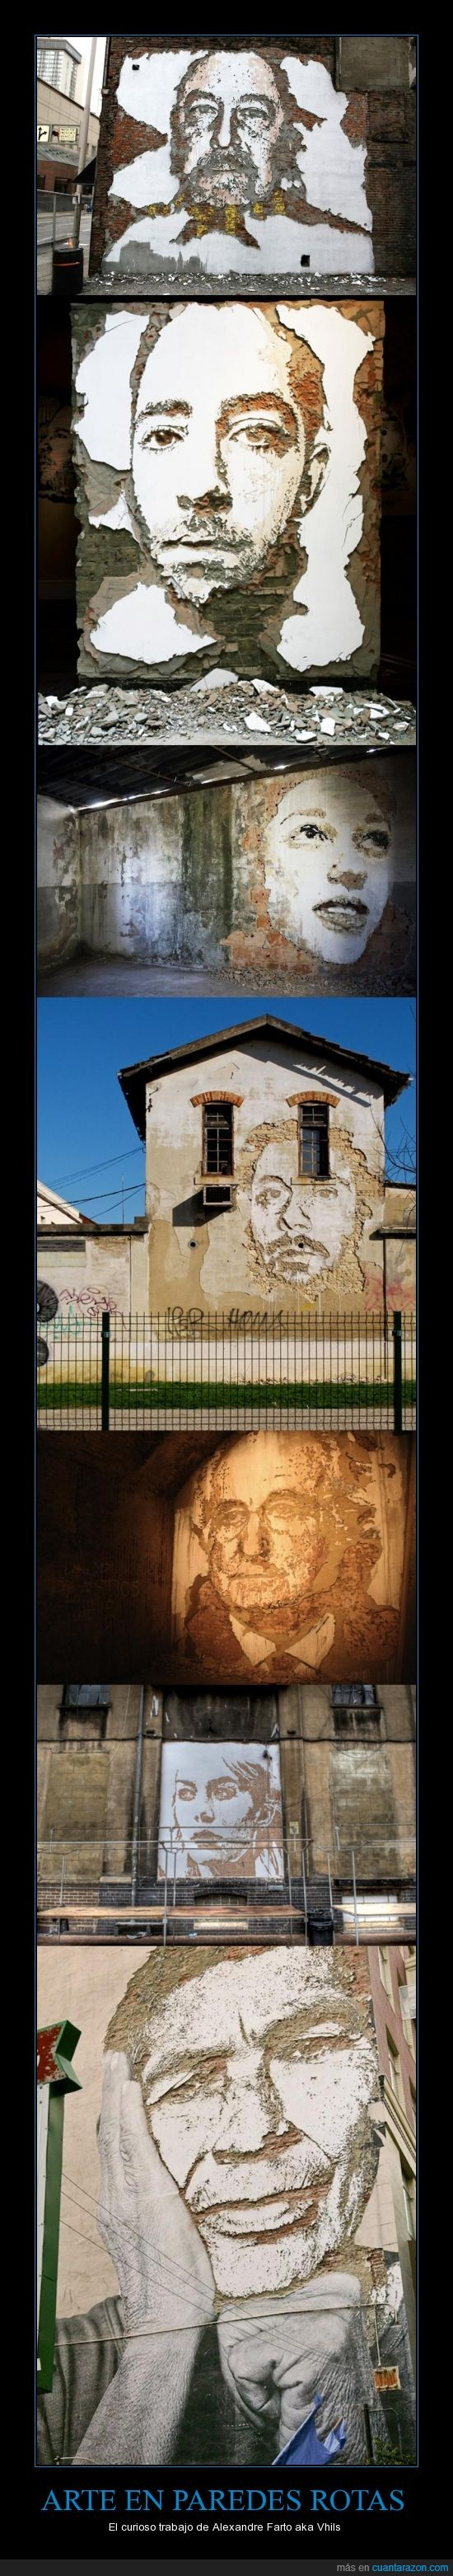 arte,muro,pared,retrato,roto,street-art